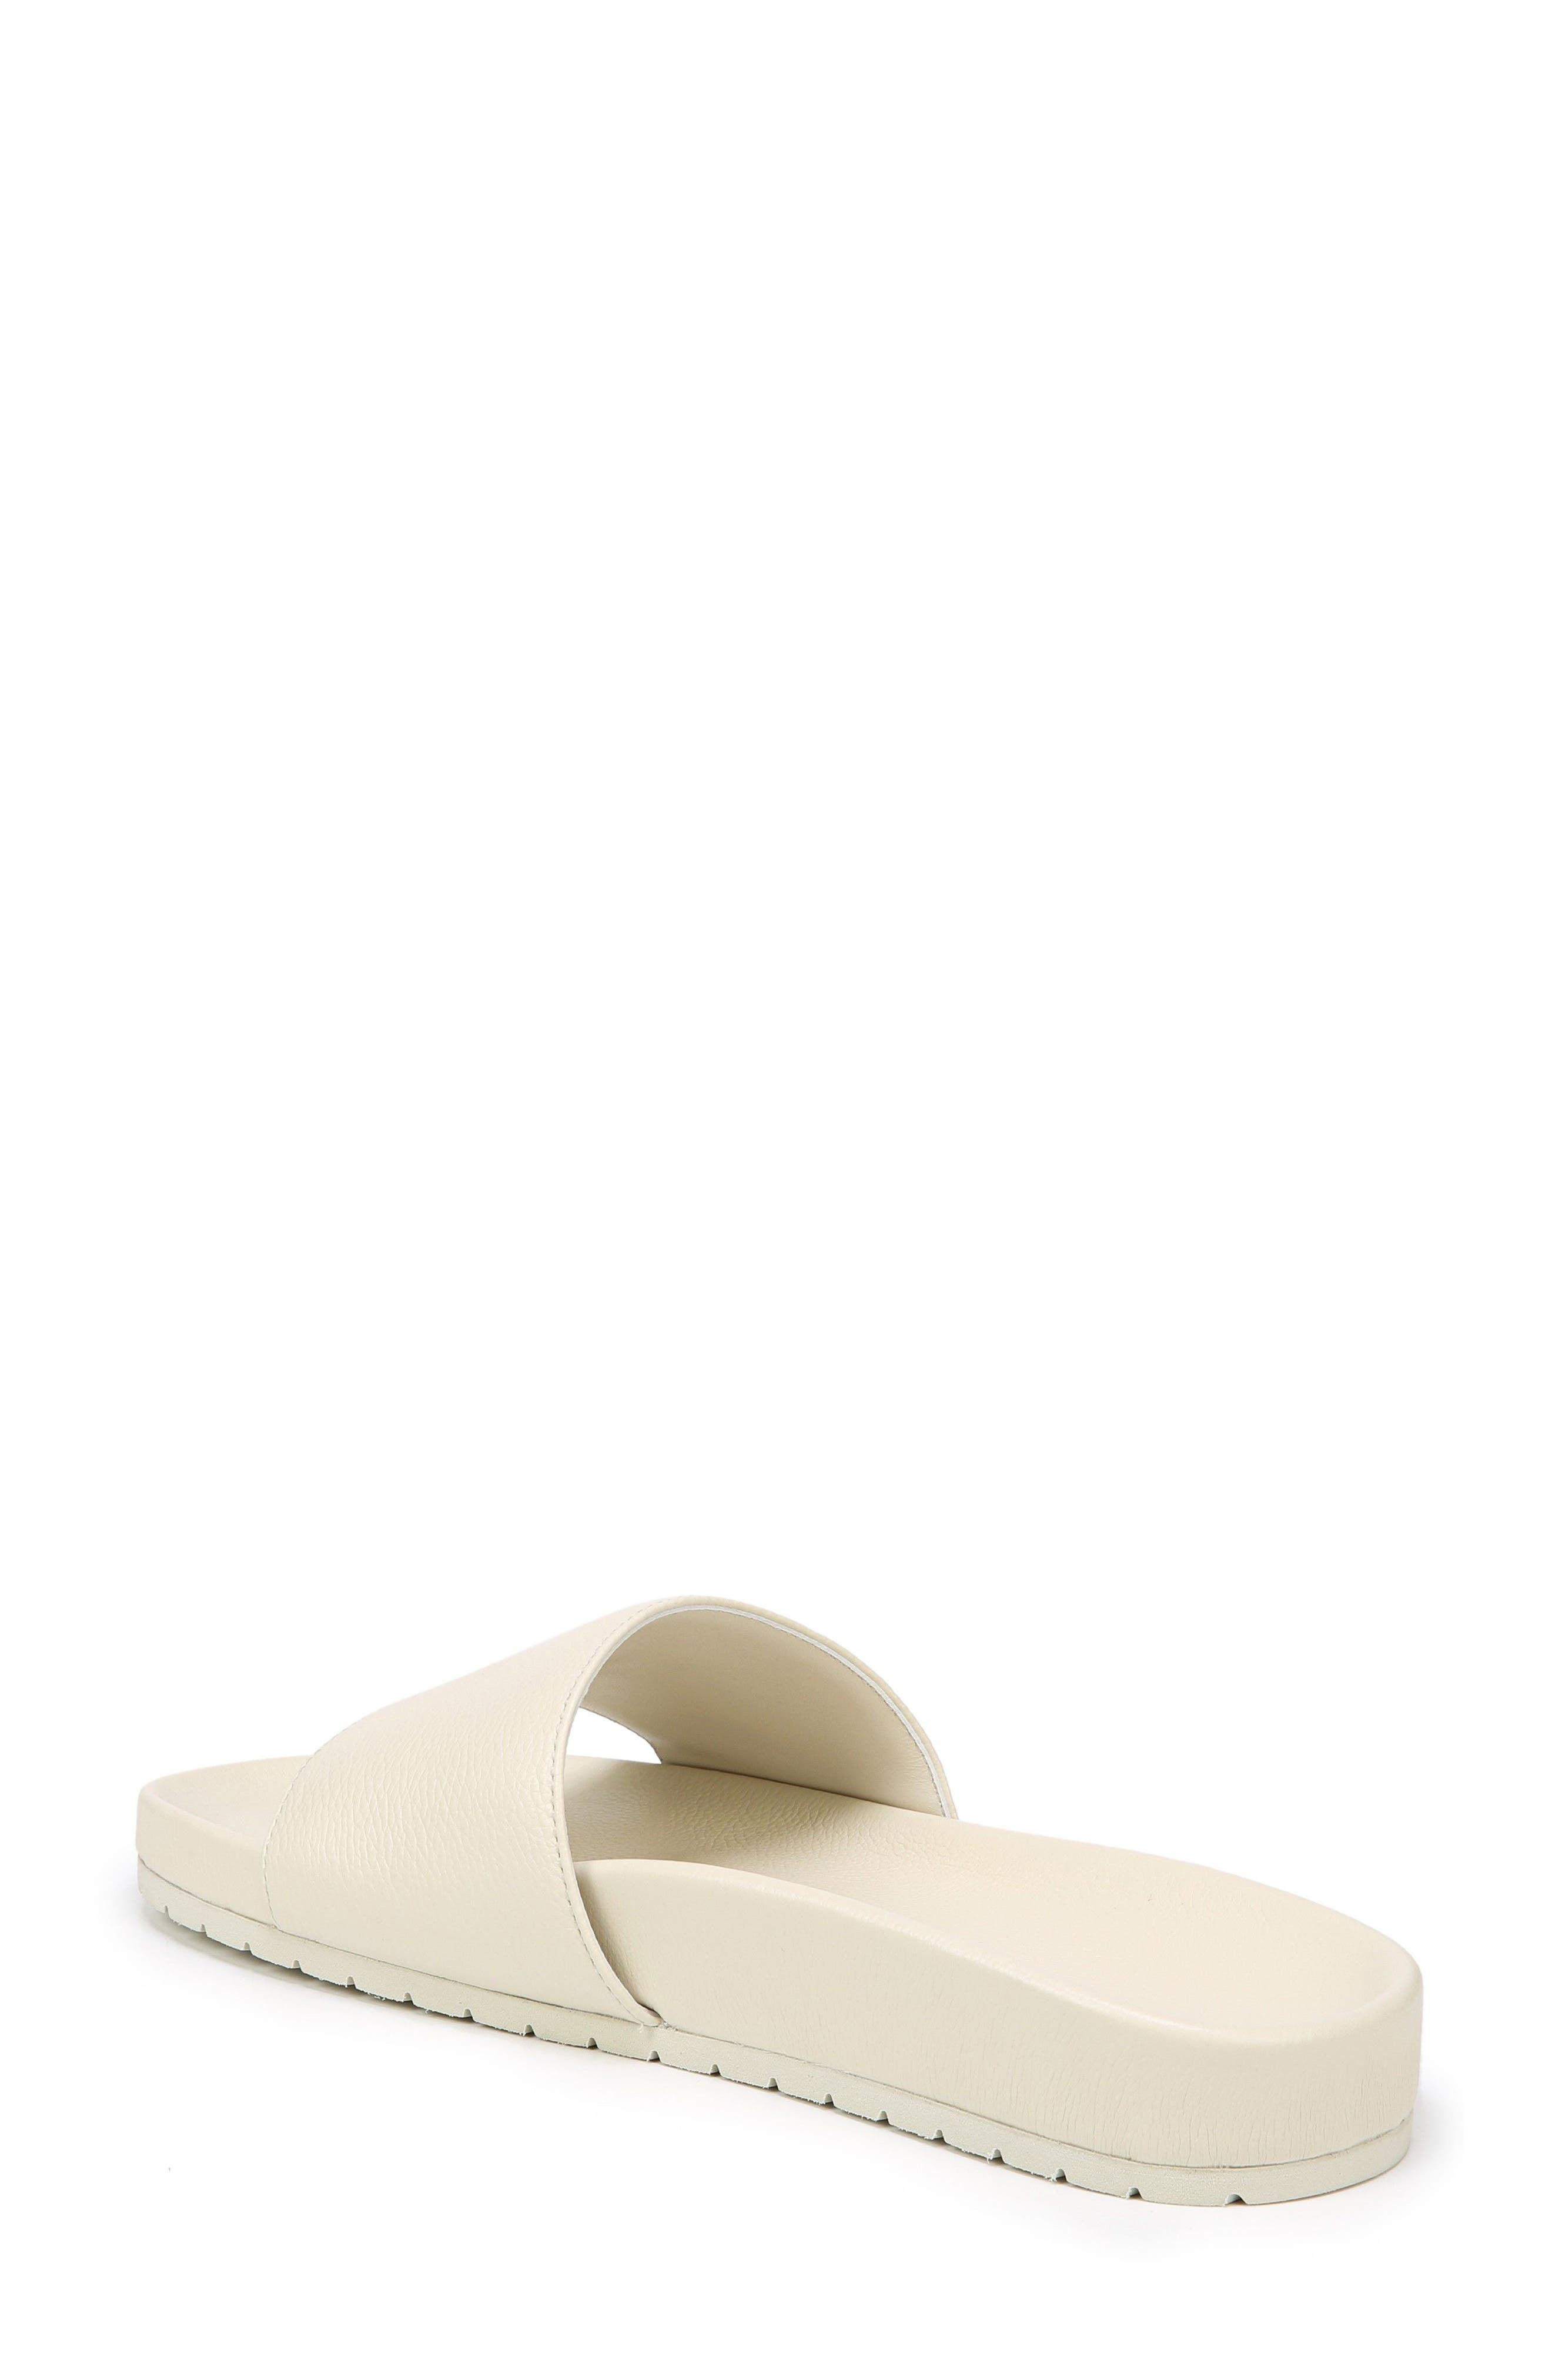 Gavin Slide Sandal,                             Alternate thumbnail 3, color,                             Ecru